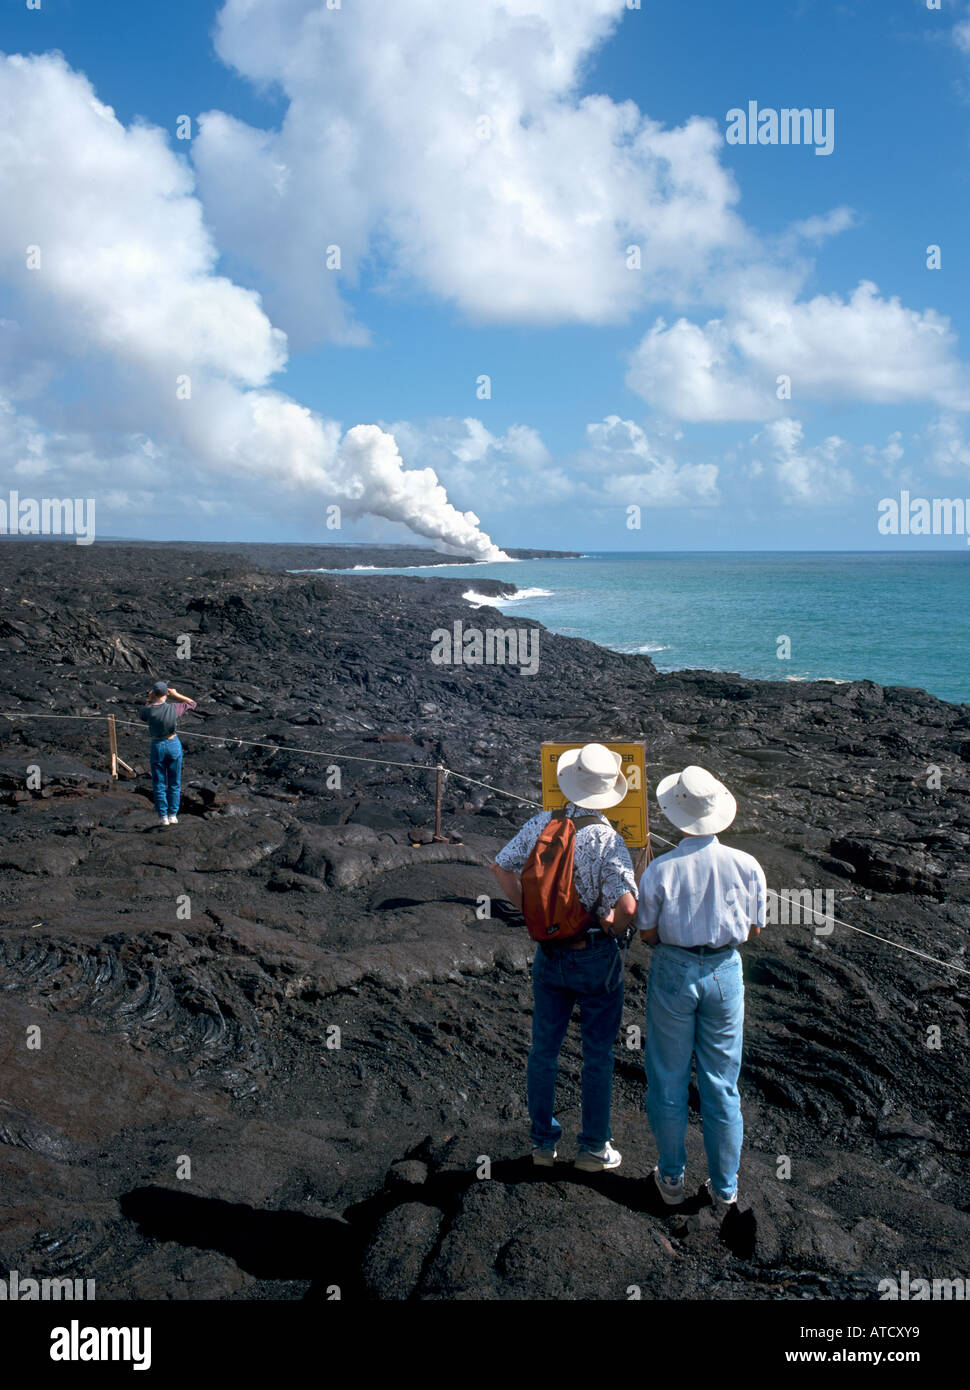 Paar, betrachtet man den Dampf von aktiven Lavastrom, Volcanoes National Park, Big Island, Hawaii, USA Stockbild